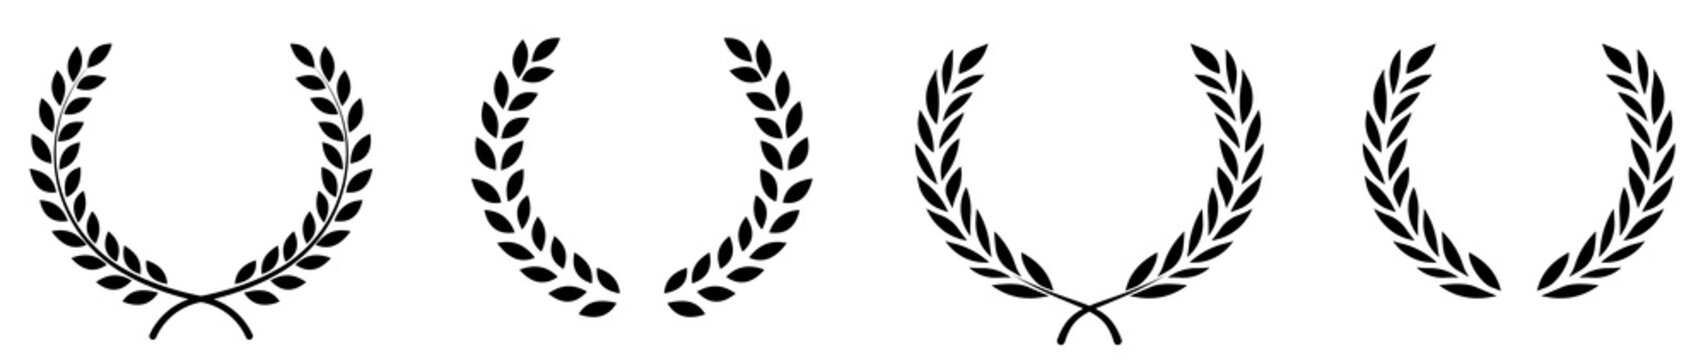 Set of black circular foliate laurels branches.Laurel wreath.Silhouette laurel wreath. Heraldic trophy crest, Greek and Roman olive branch award, winner round emblem. Vector black laurels set